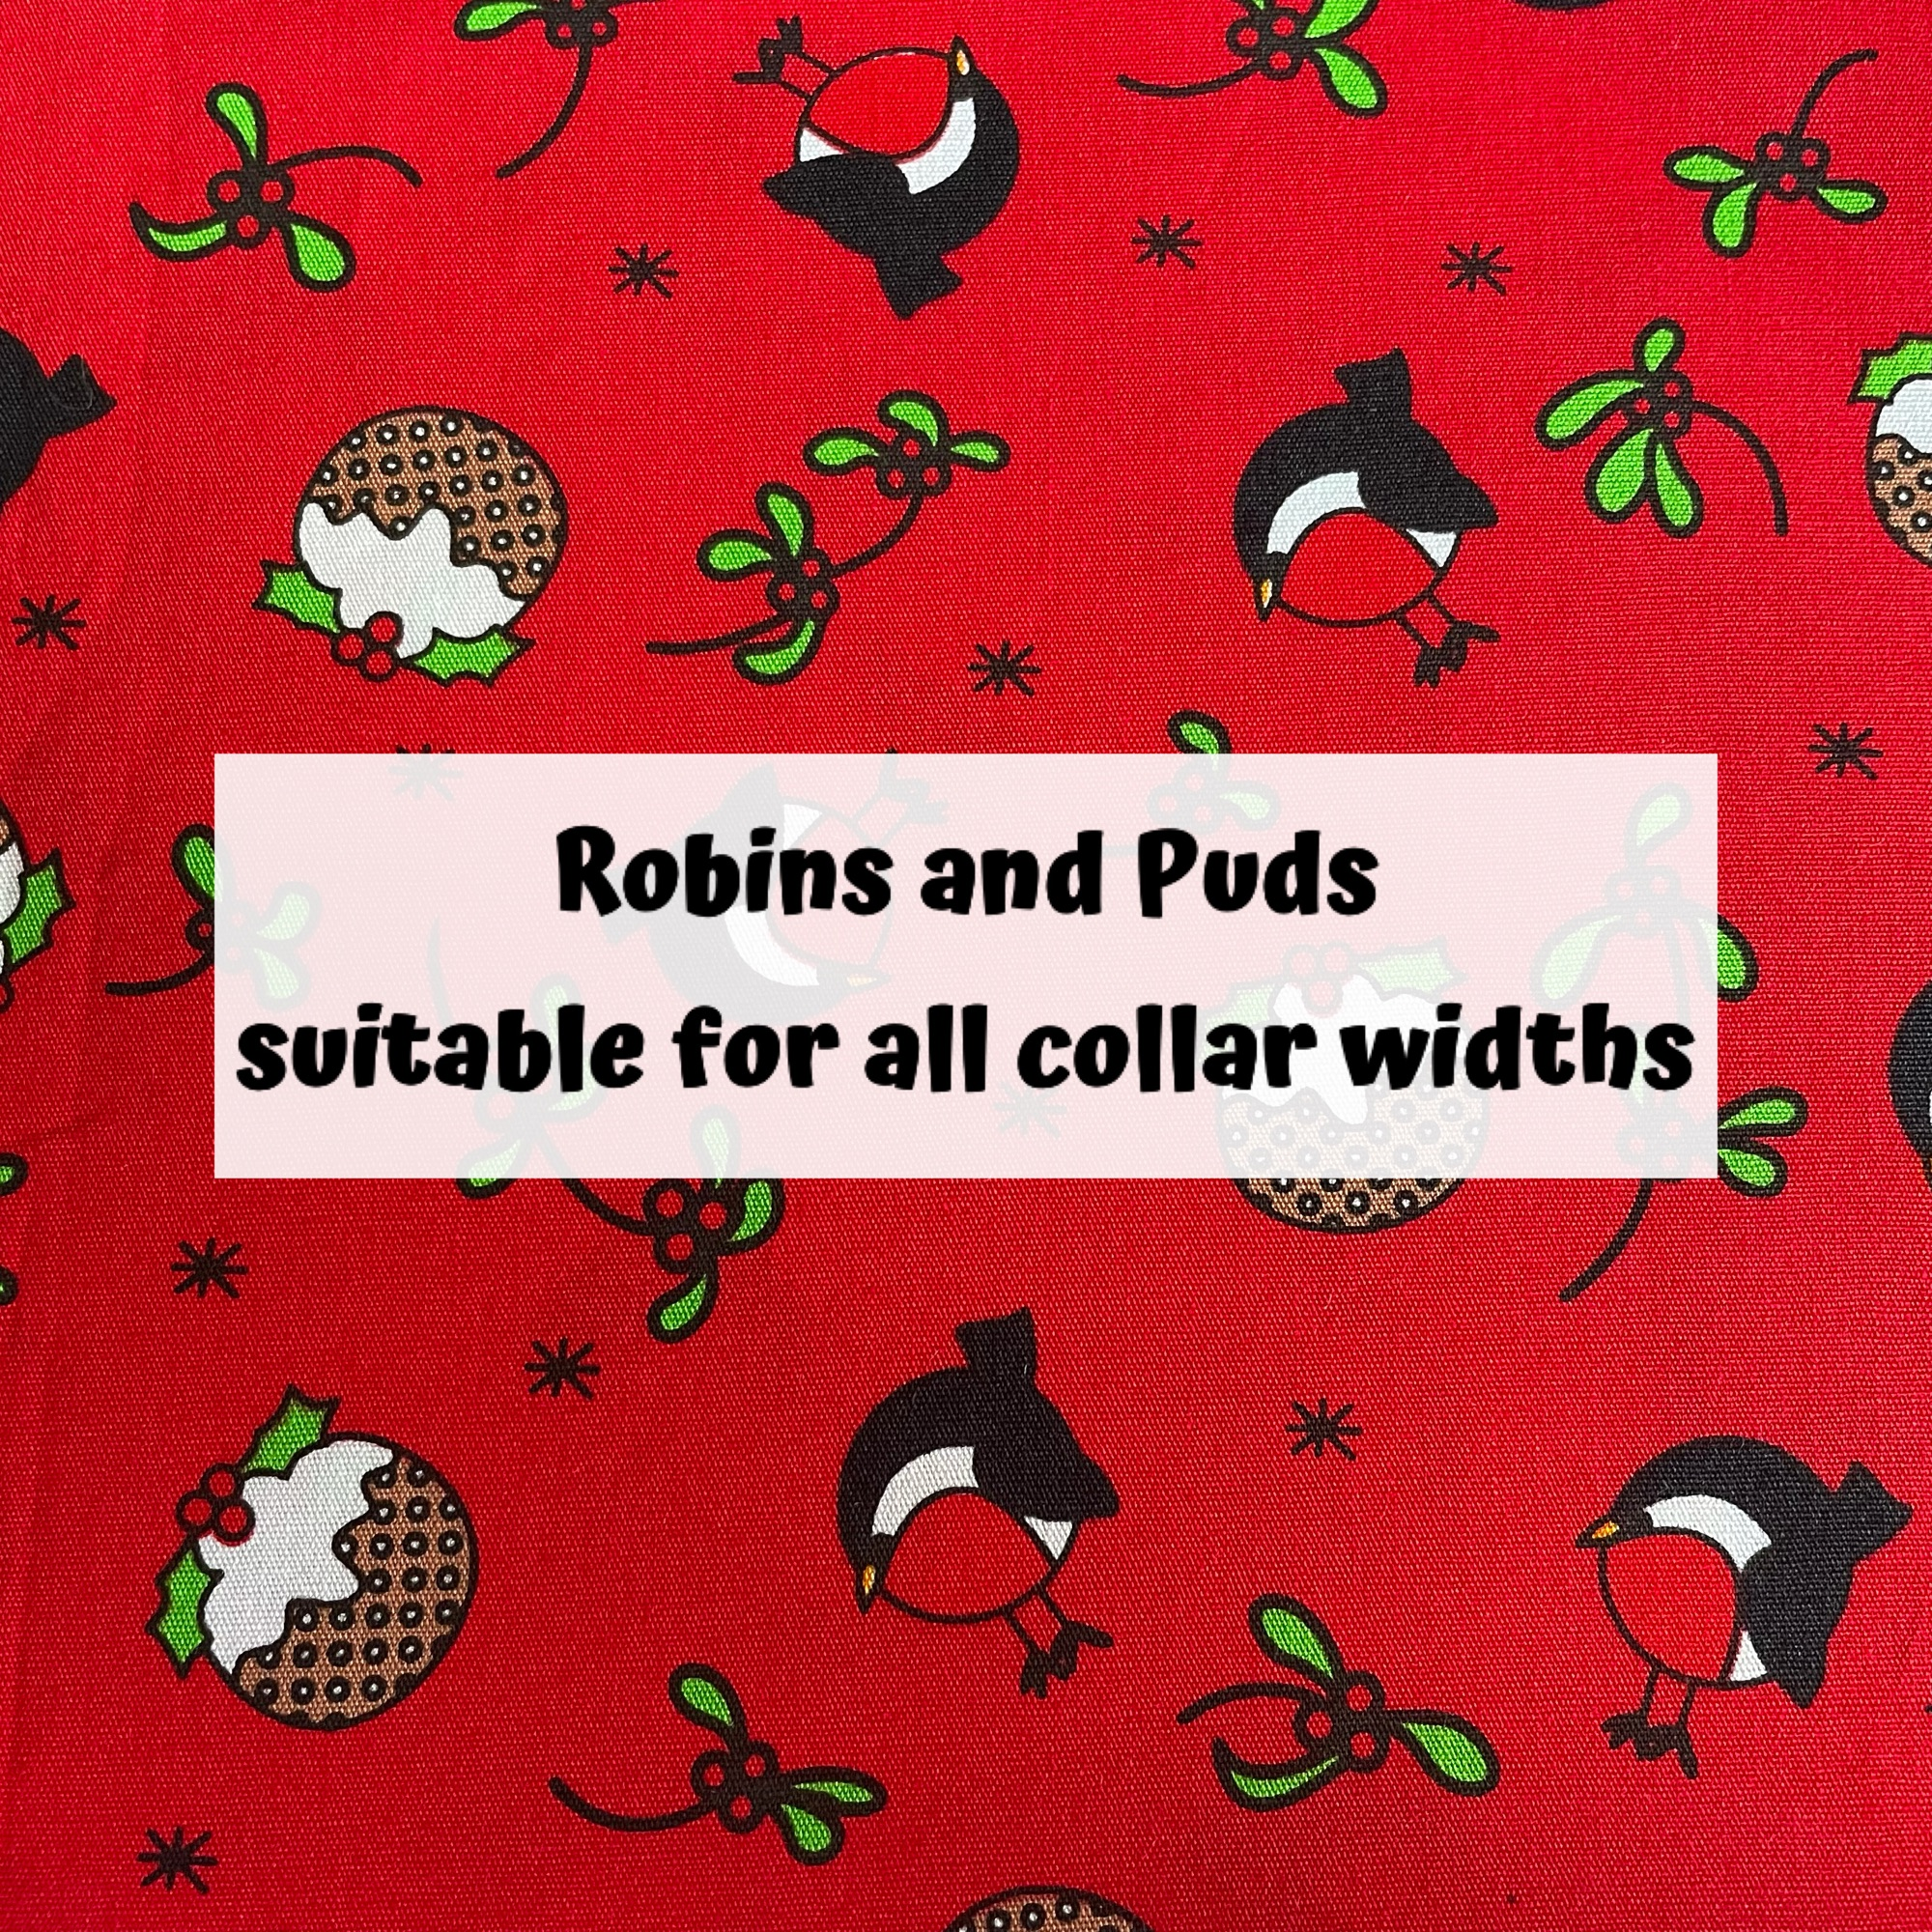 Robins and Puds